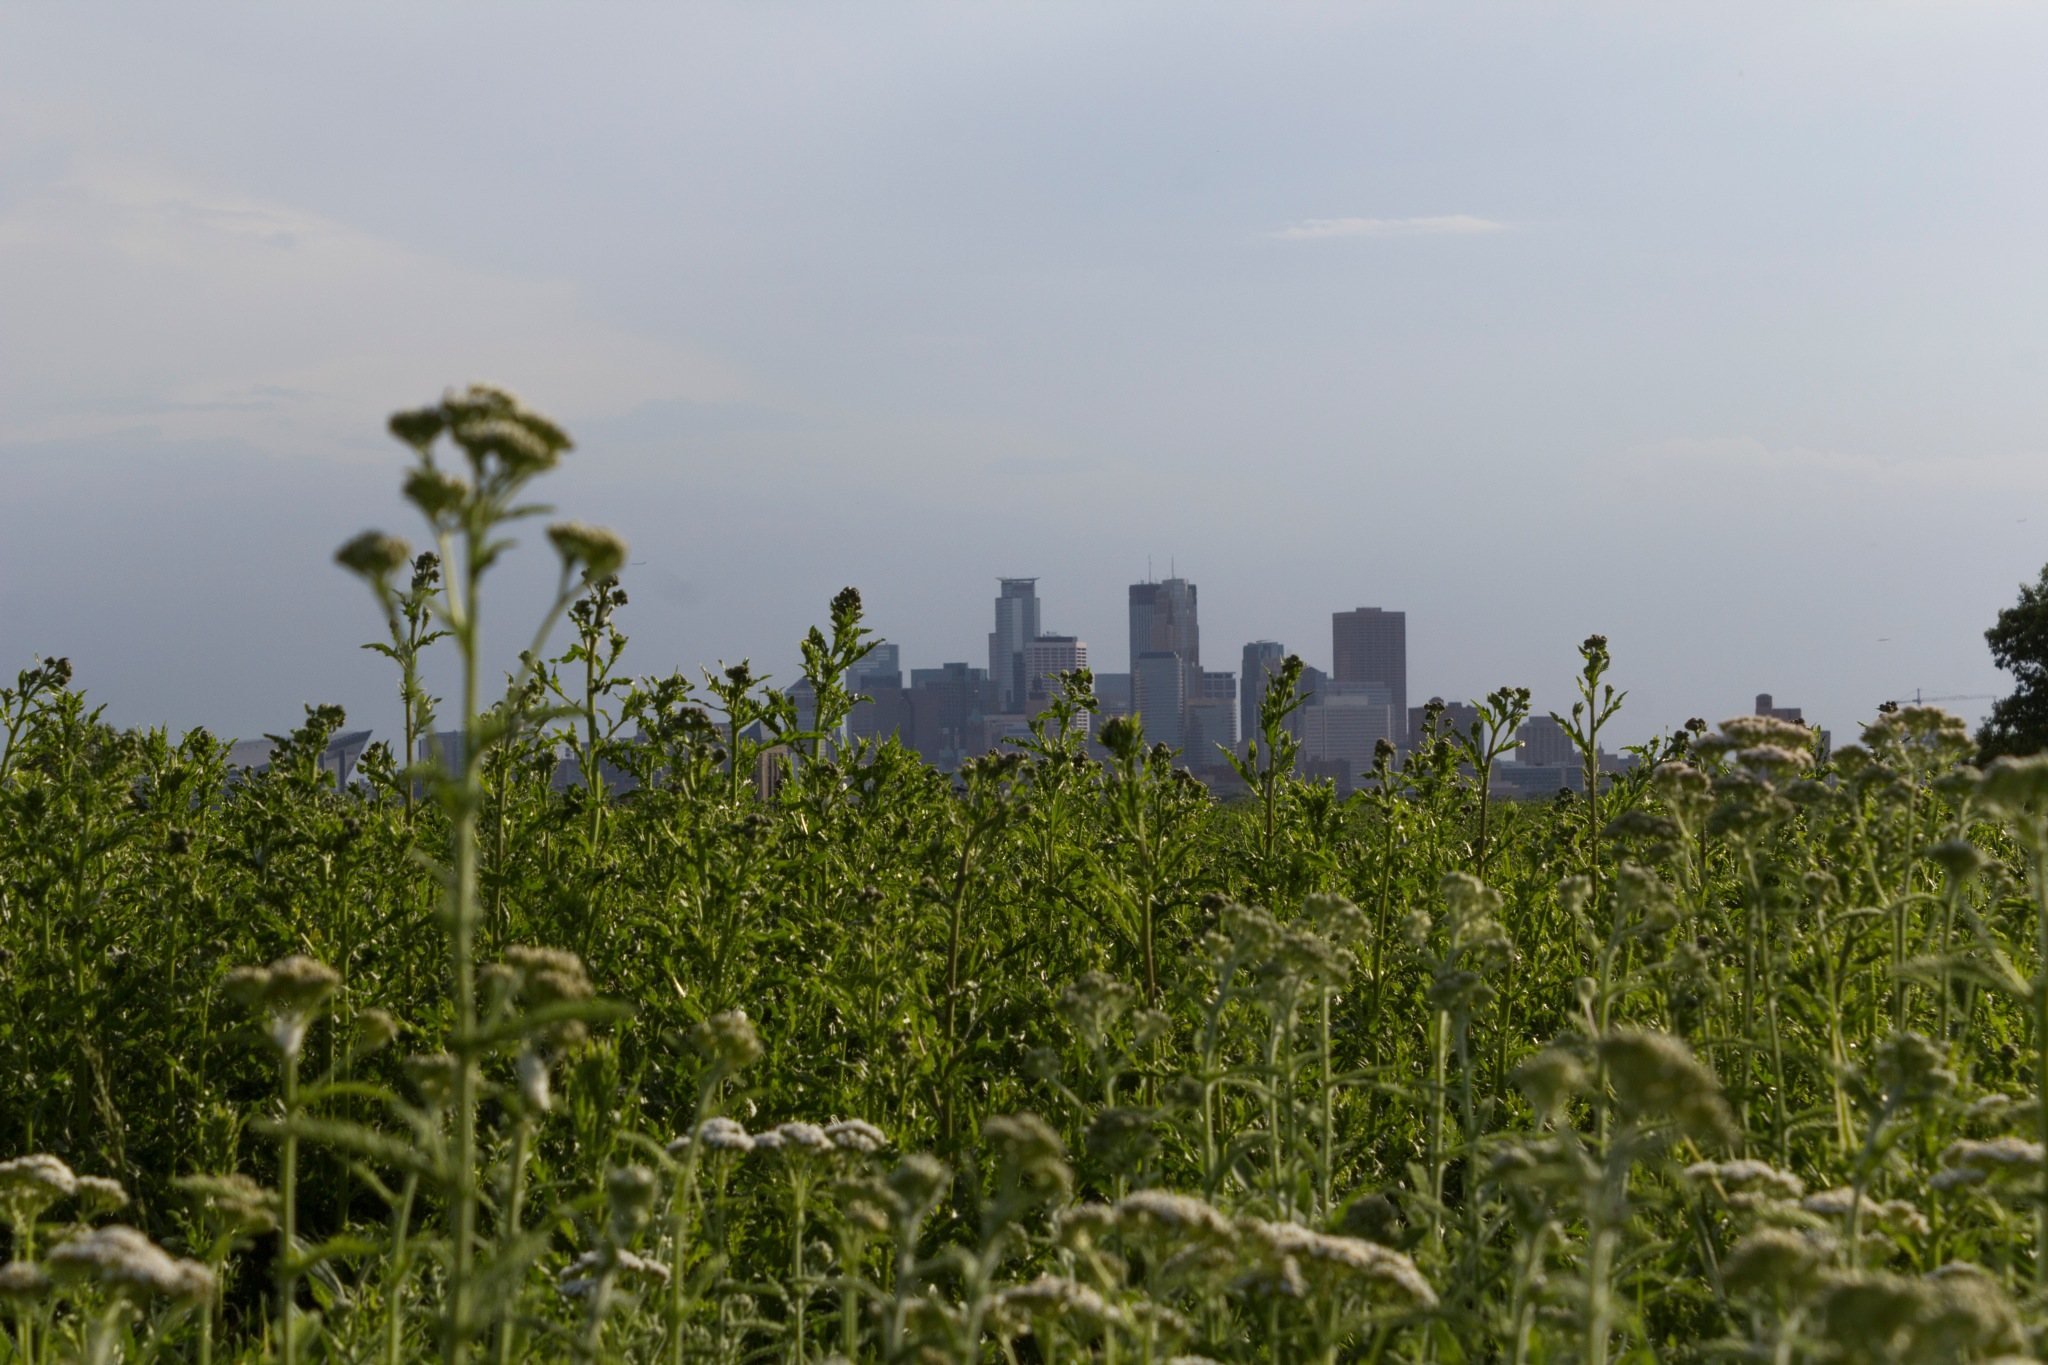 minneapolis from the northeast by Carson Kaskel